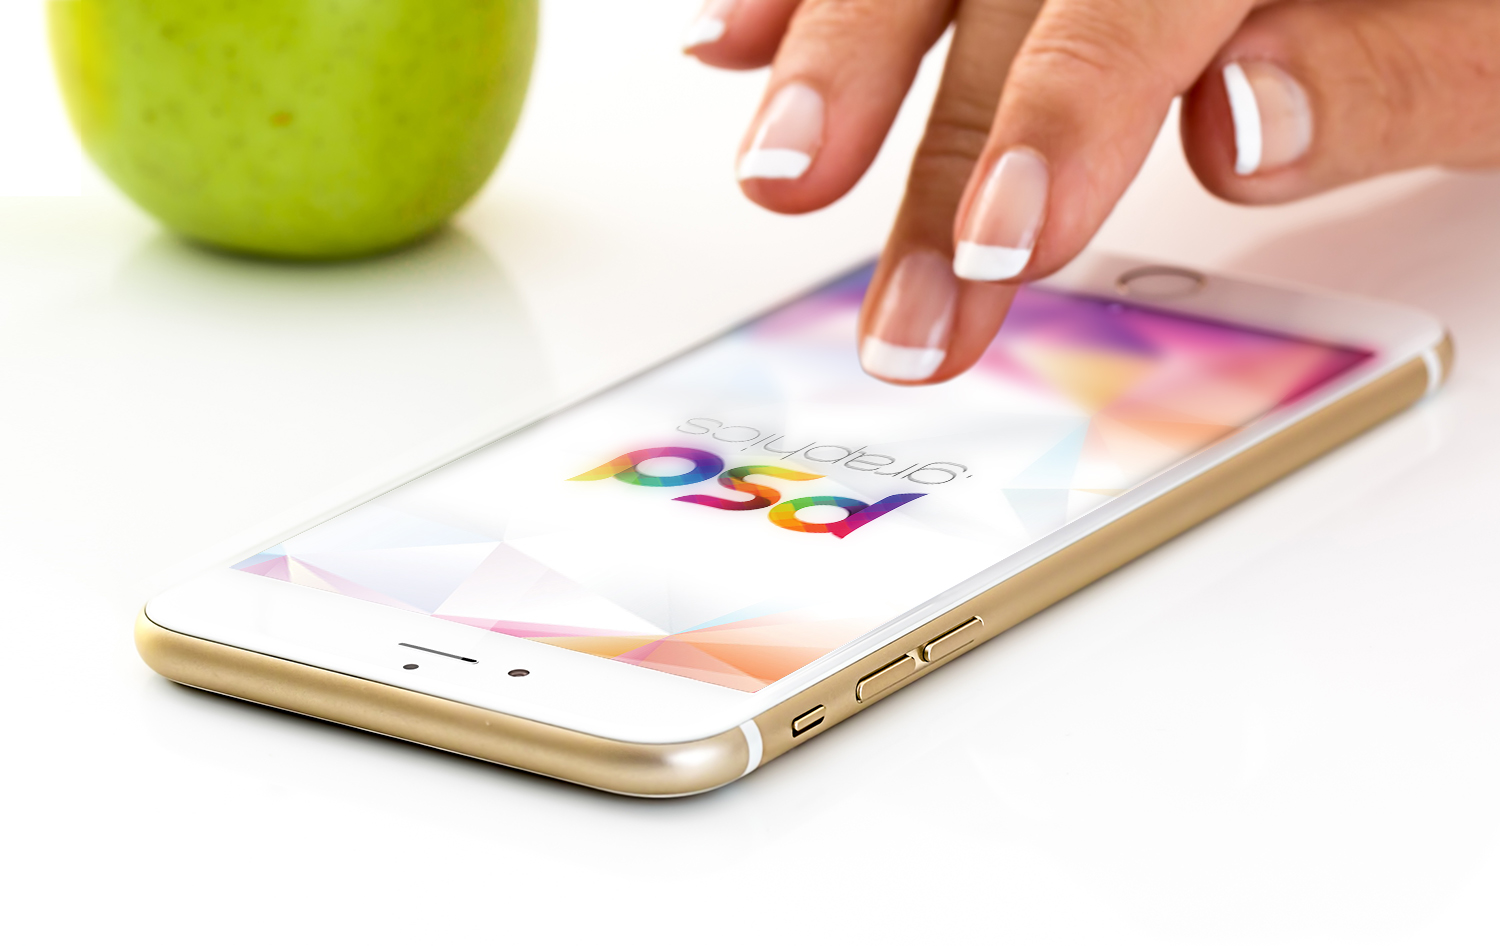 Golden iPhone with Female Hand Mockup